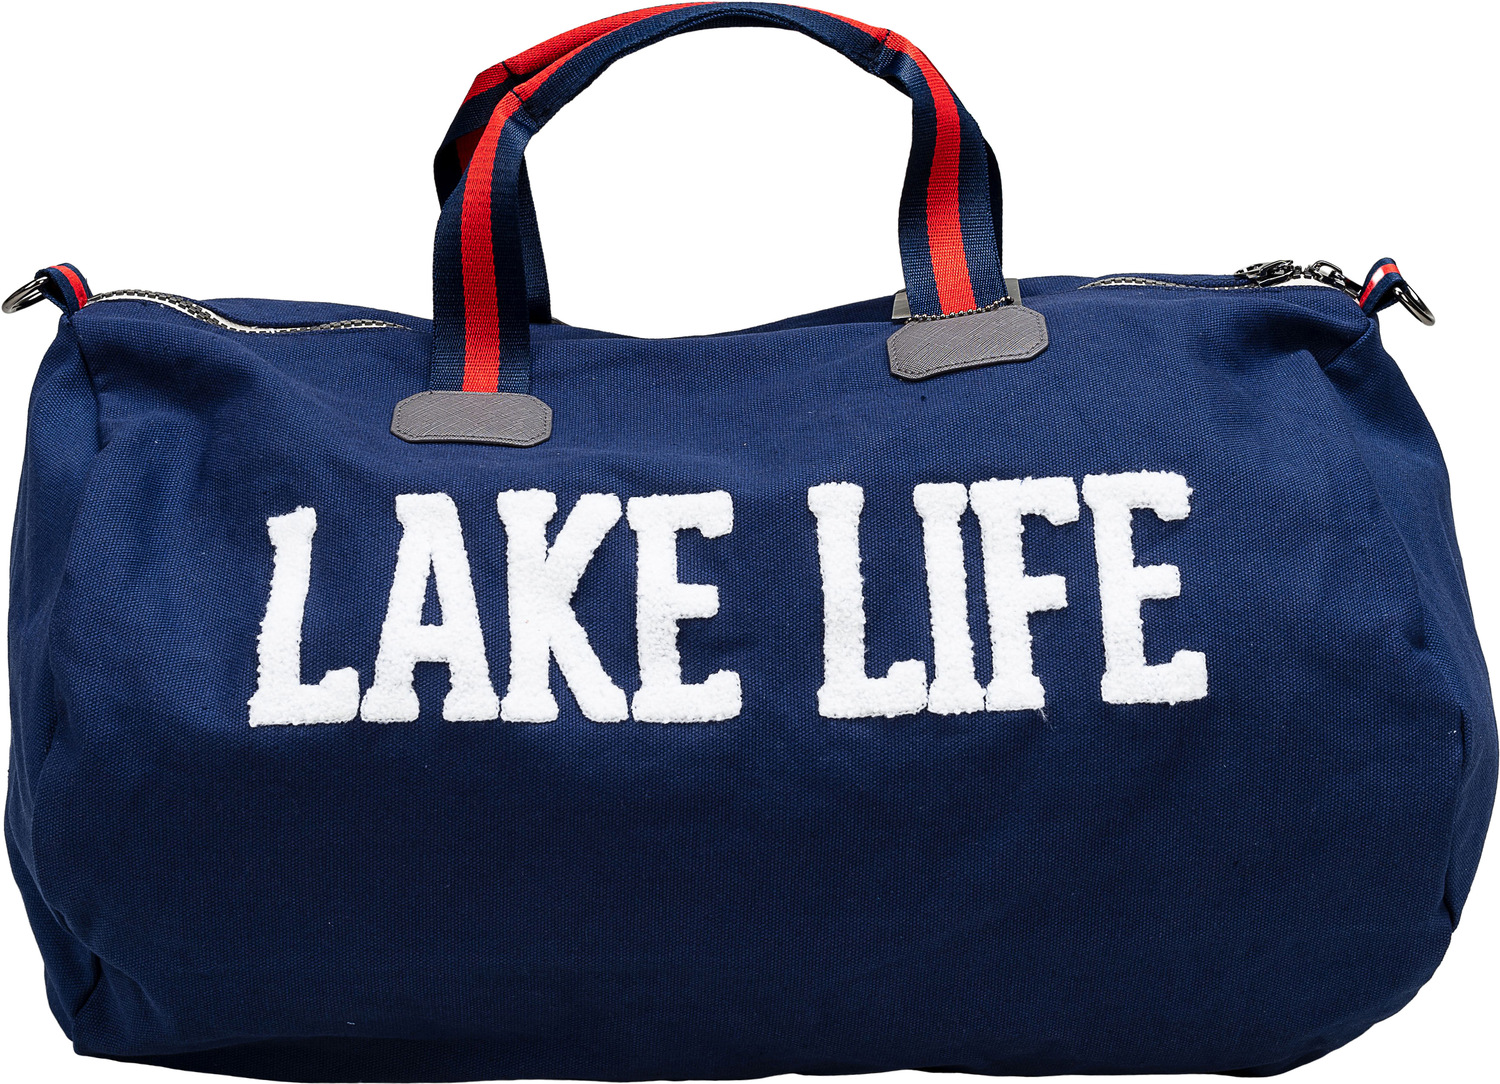 "Lake Life by We People - Lake Life - 21.5"" x 13"" Canvas Duffle Bag"